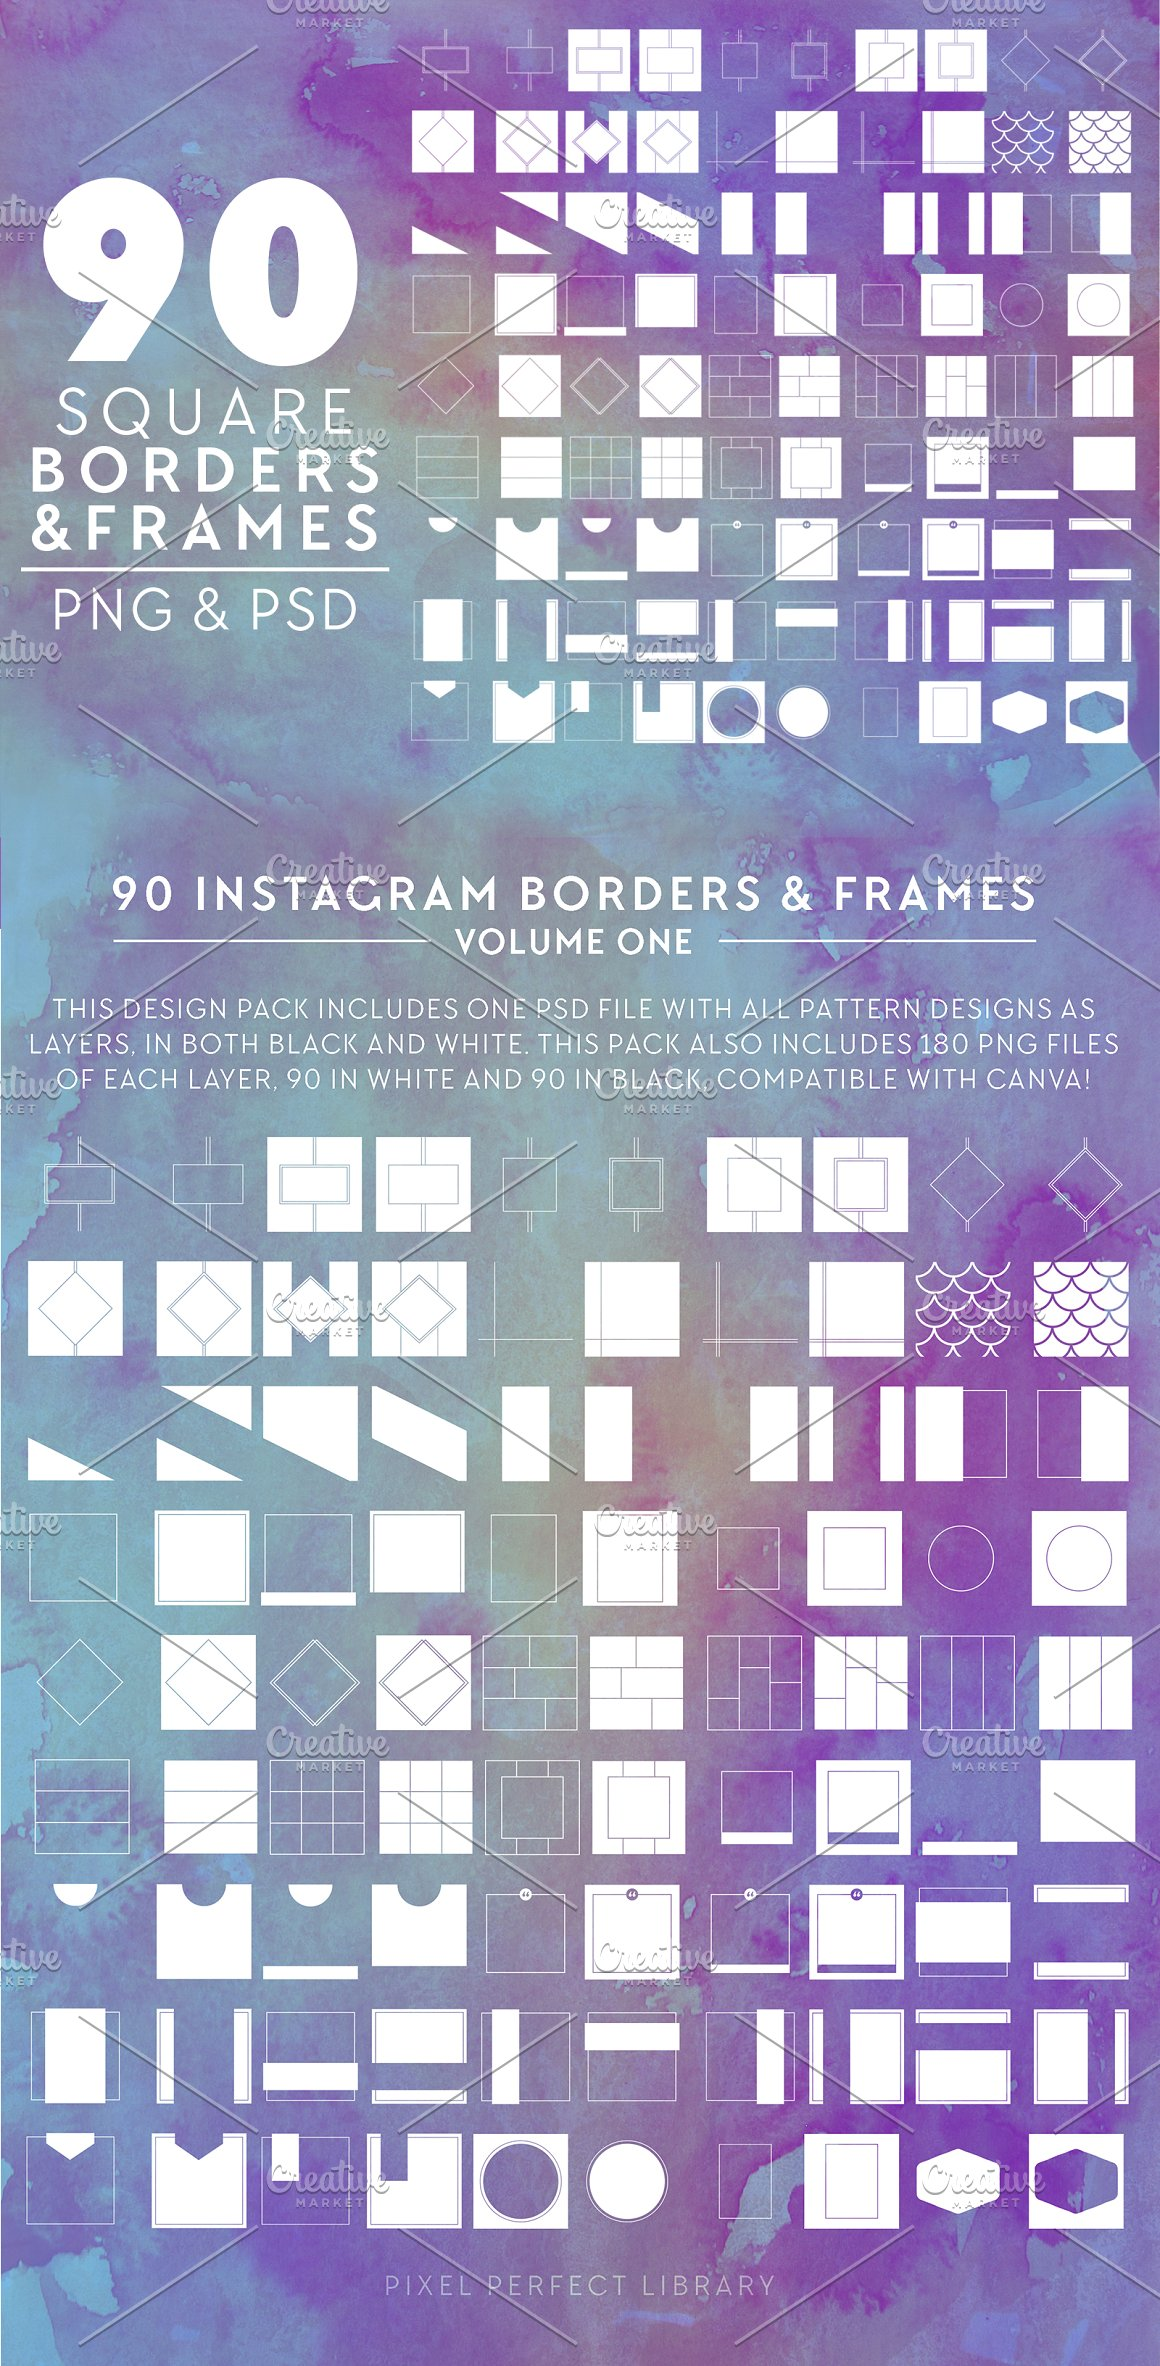 90 PNG & PSD Borders & Frames